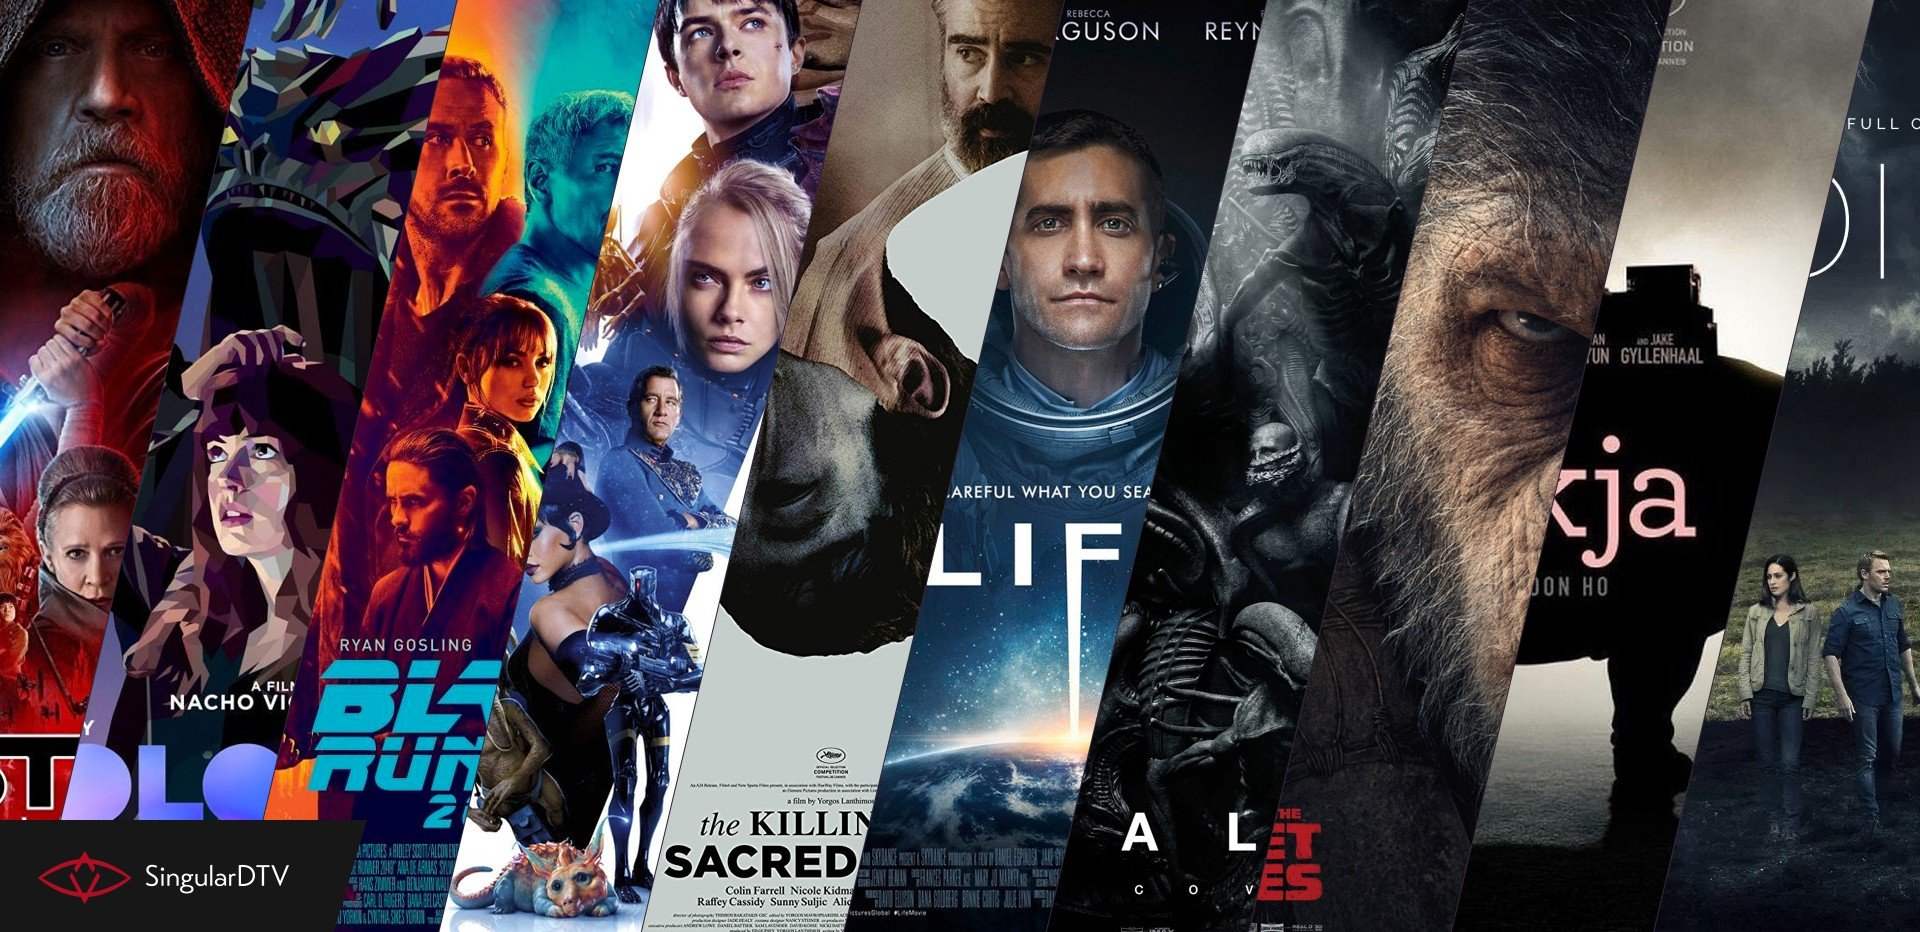 20 Best Science-Fiction Movies recommended by SAAS